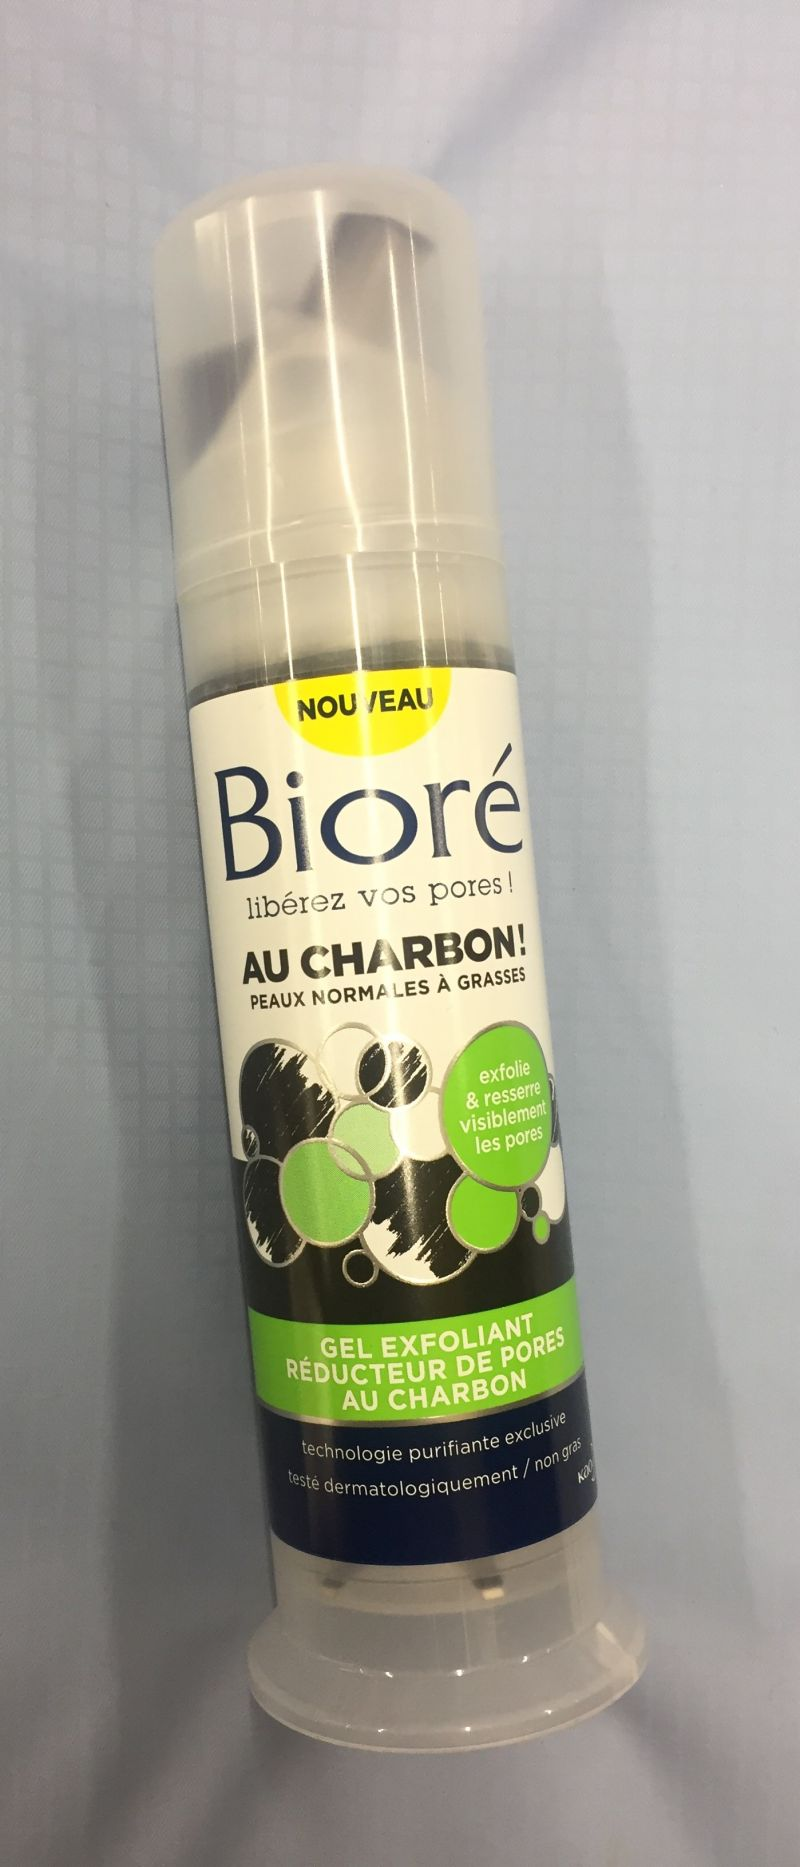 Gel exfoliant, Bioré : Alicee aime !